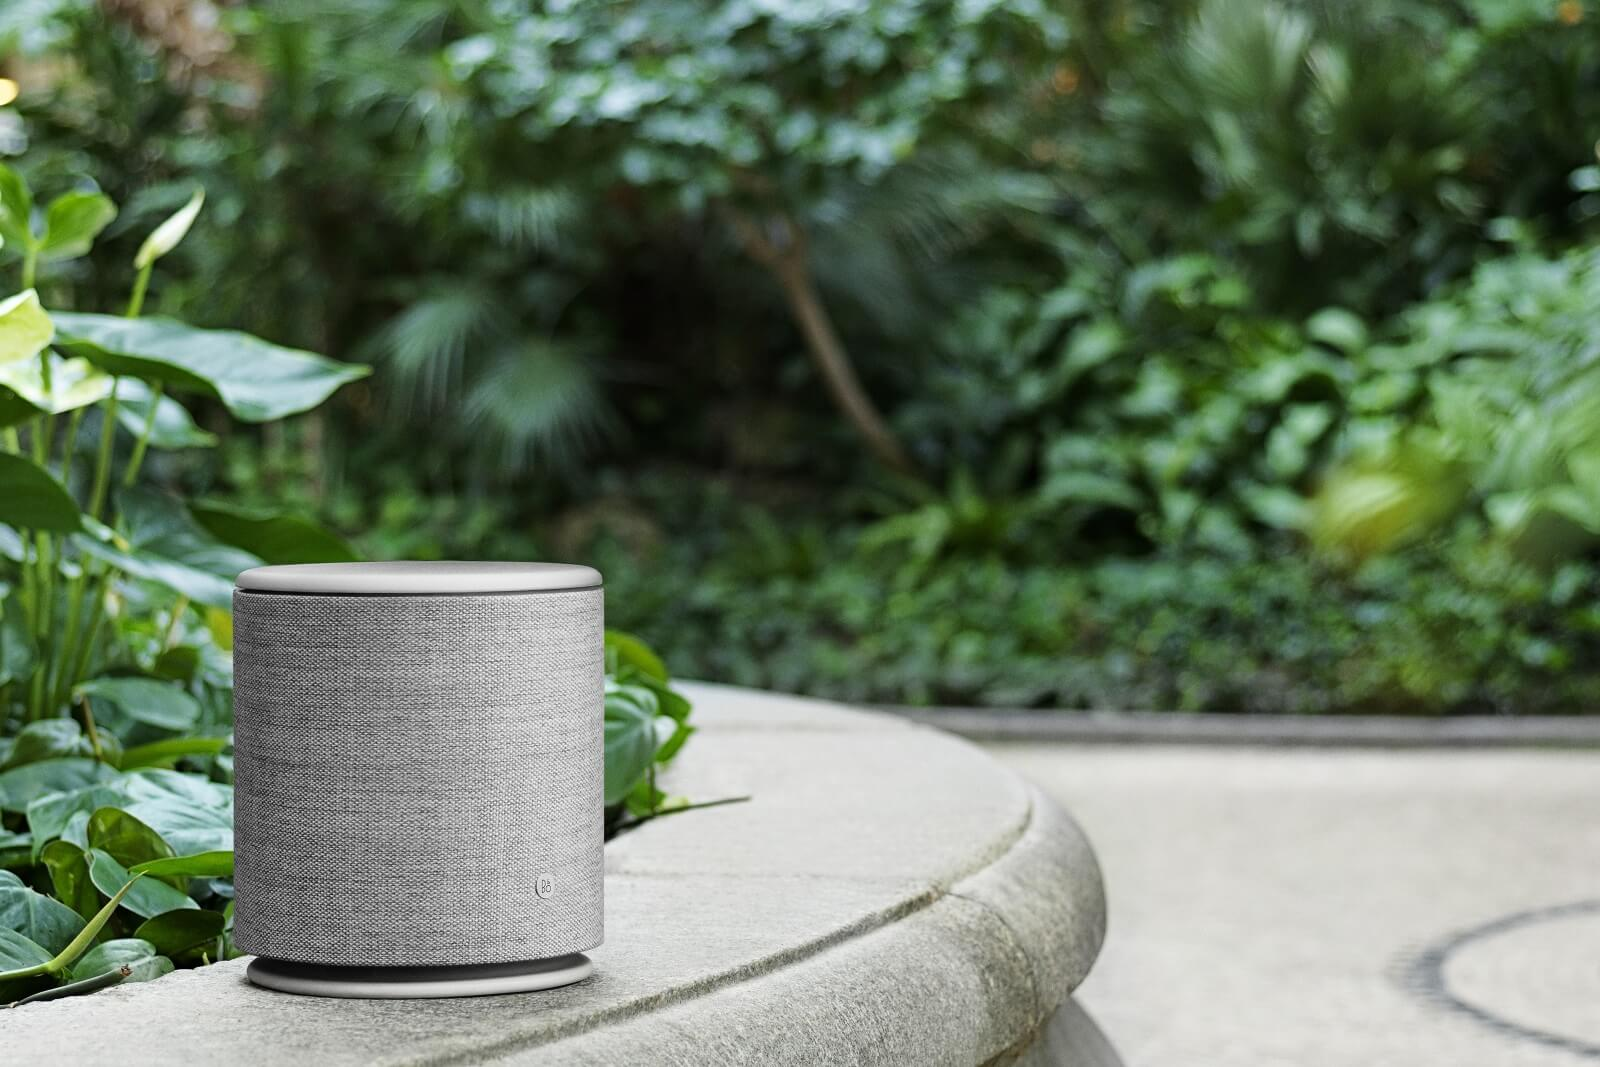 Beoplay M5 - wireless speaker with True360 omnidirectional sound